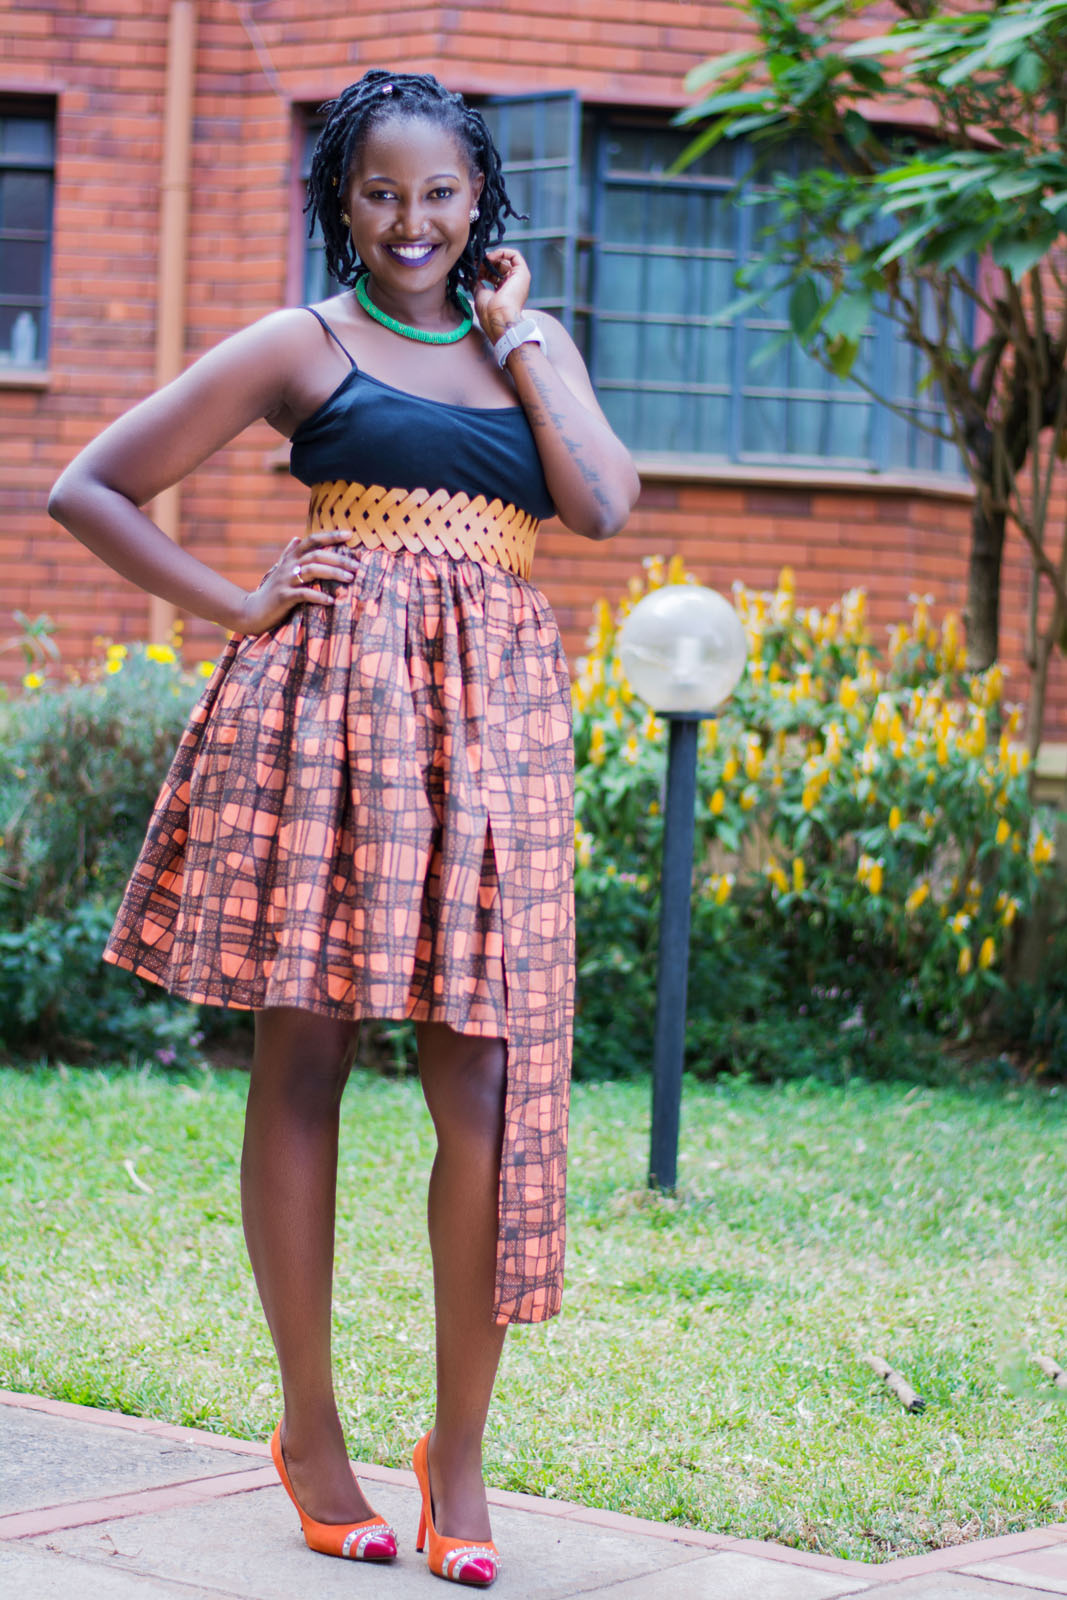 wanjiru-kariuki-church-fashion-8